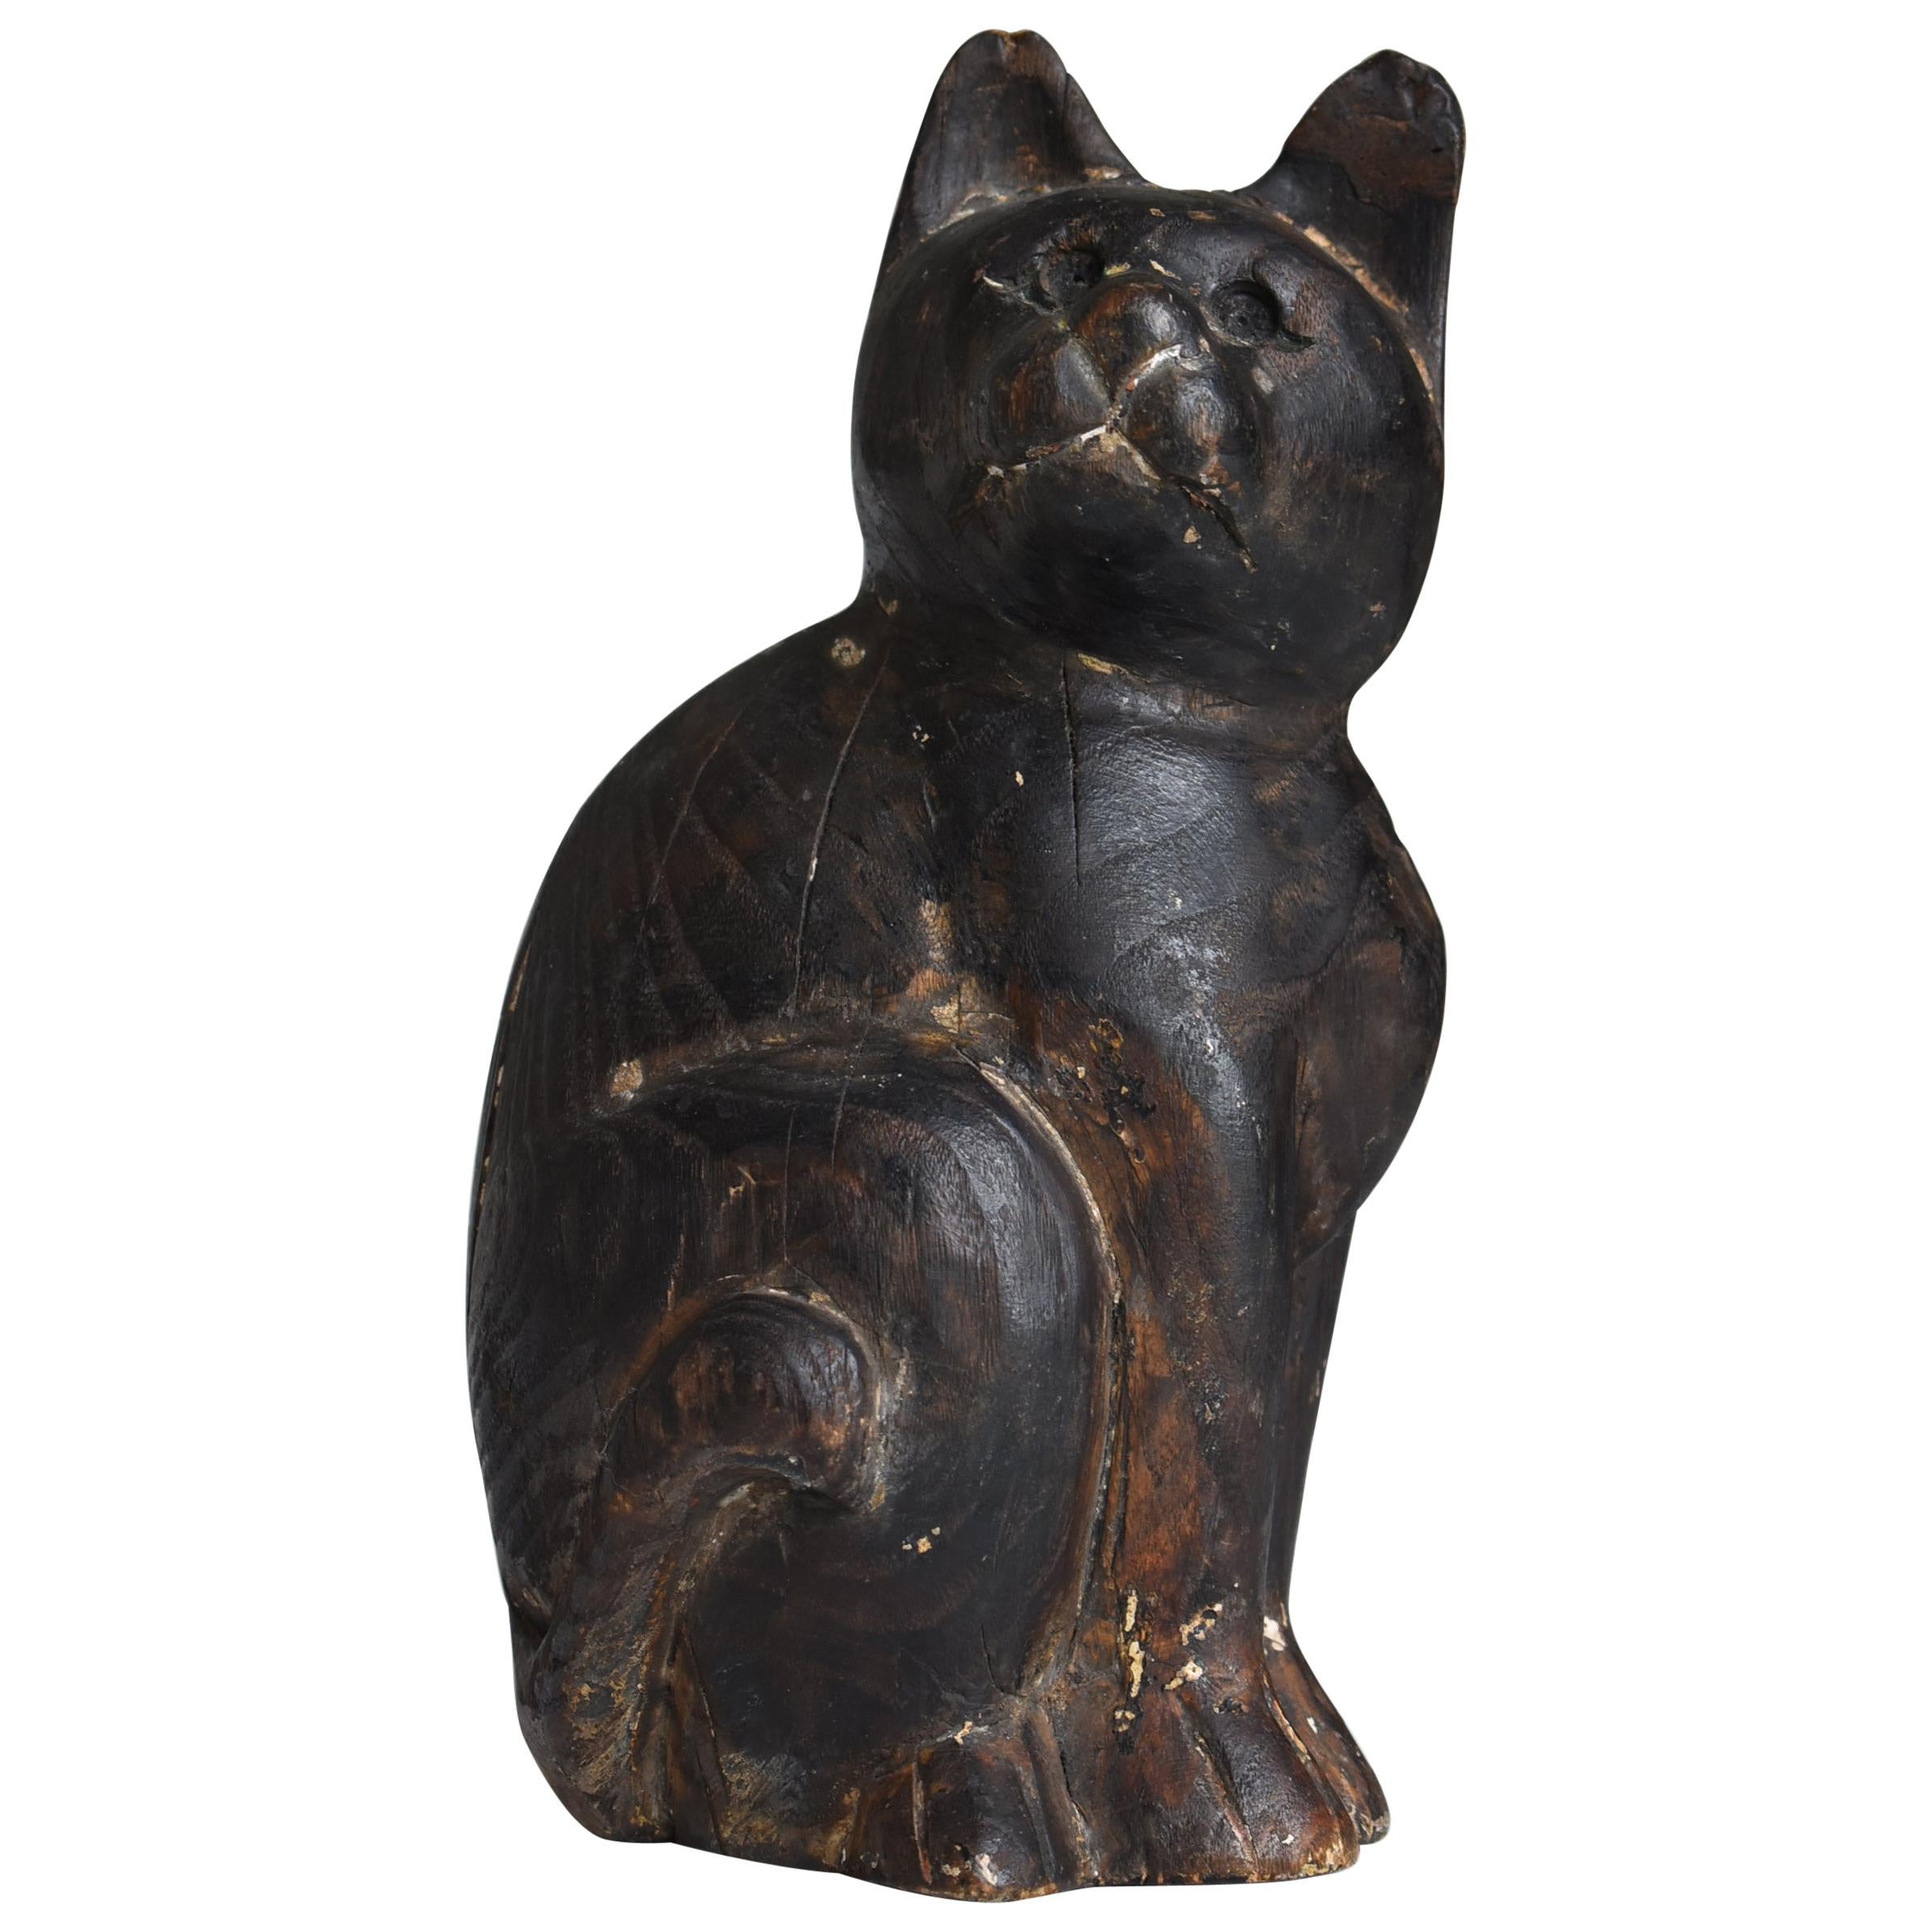 Japanese Old Wood Carving Cat 1860s-1920s / Antique Figurine Animal Sculpture